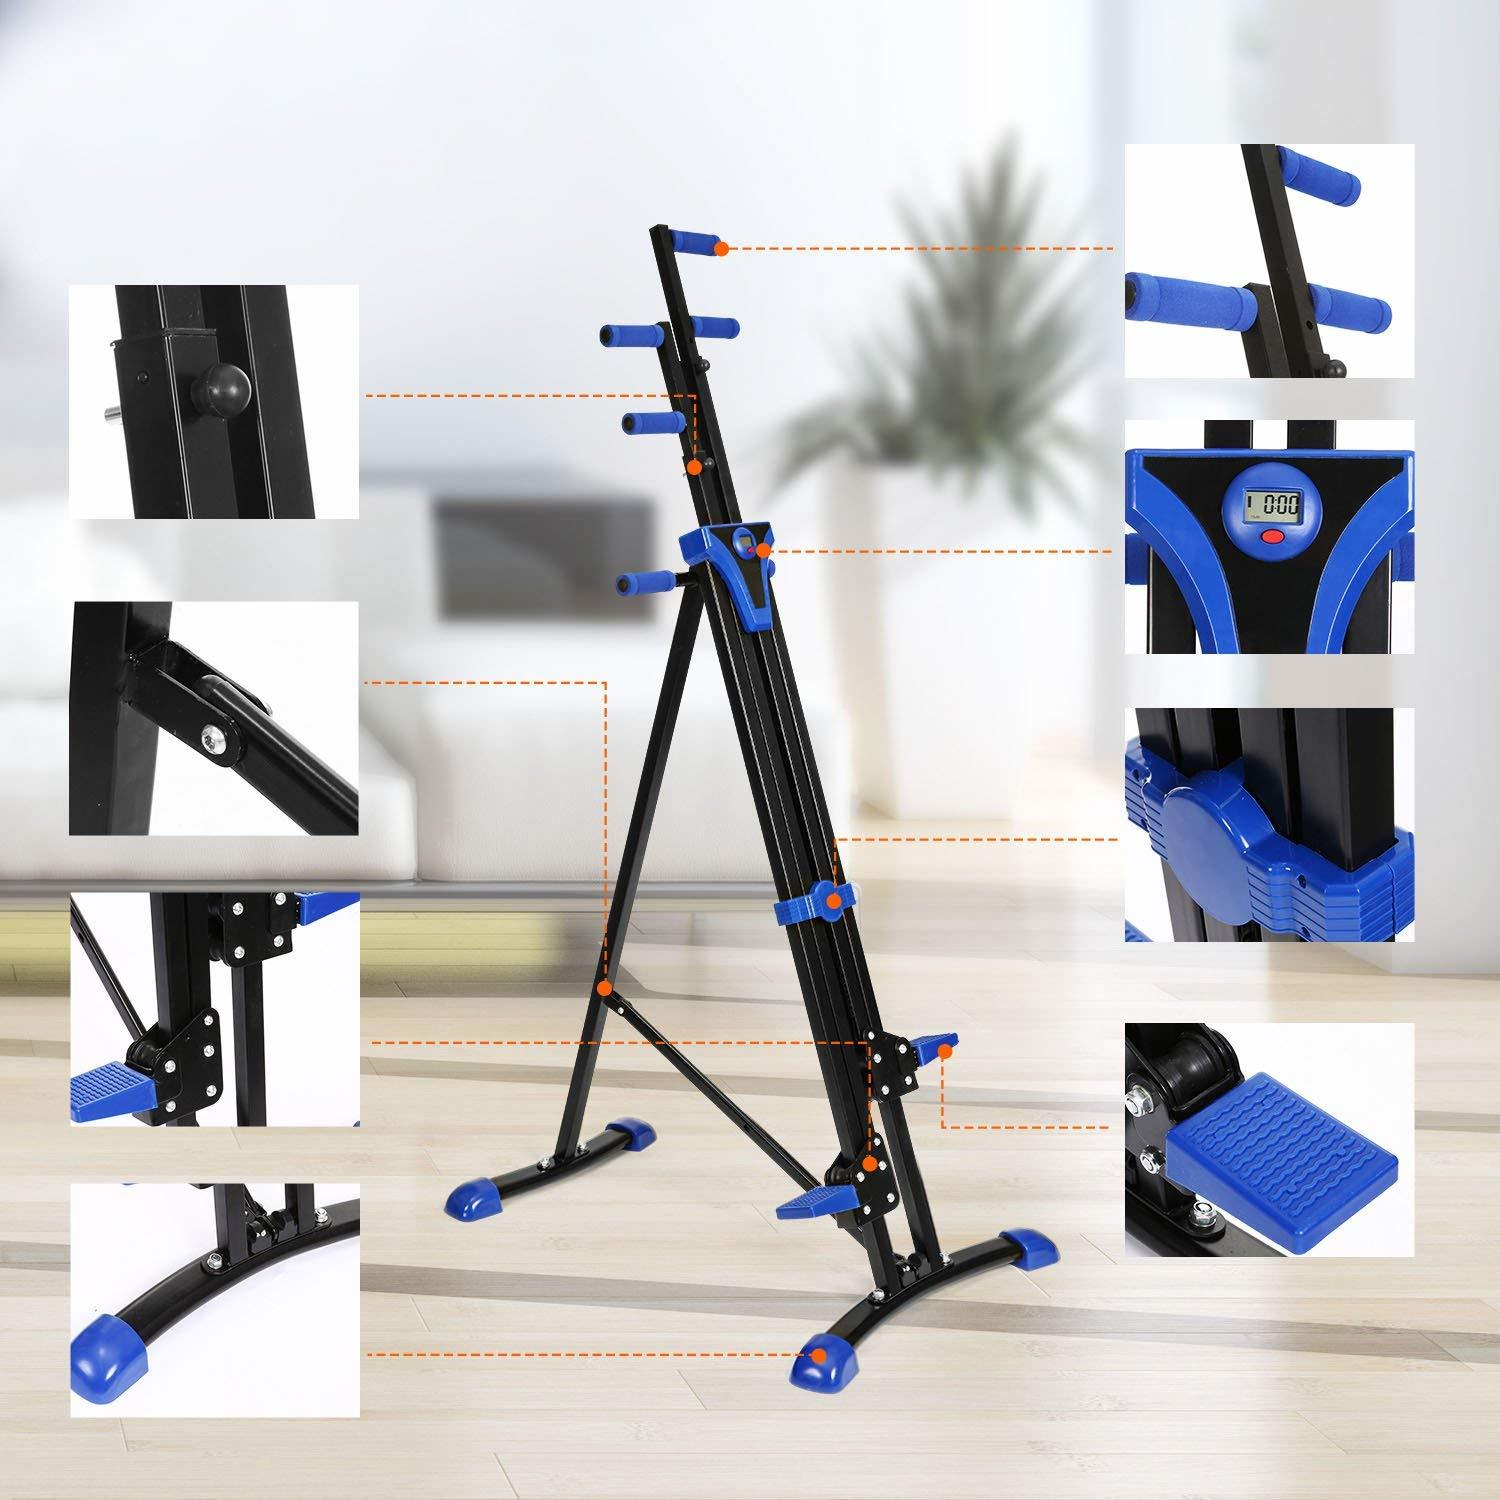 5 BEST vertical climber machines (& AFFORDABLE) 10